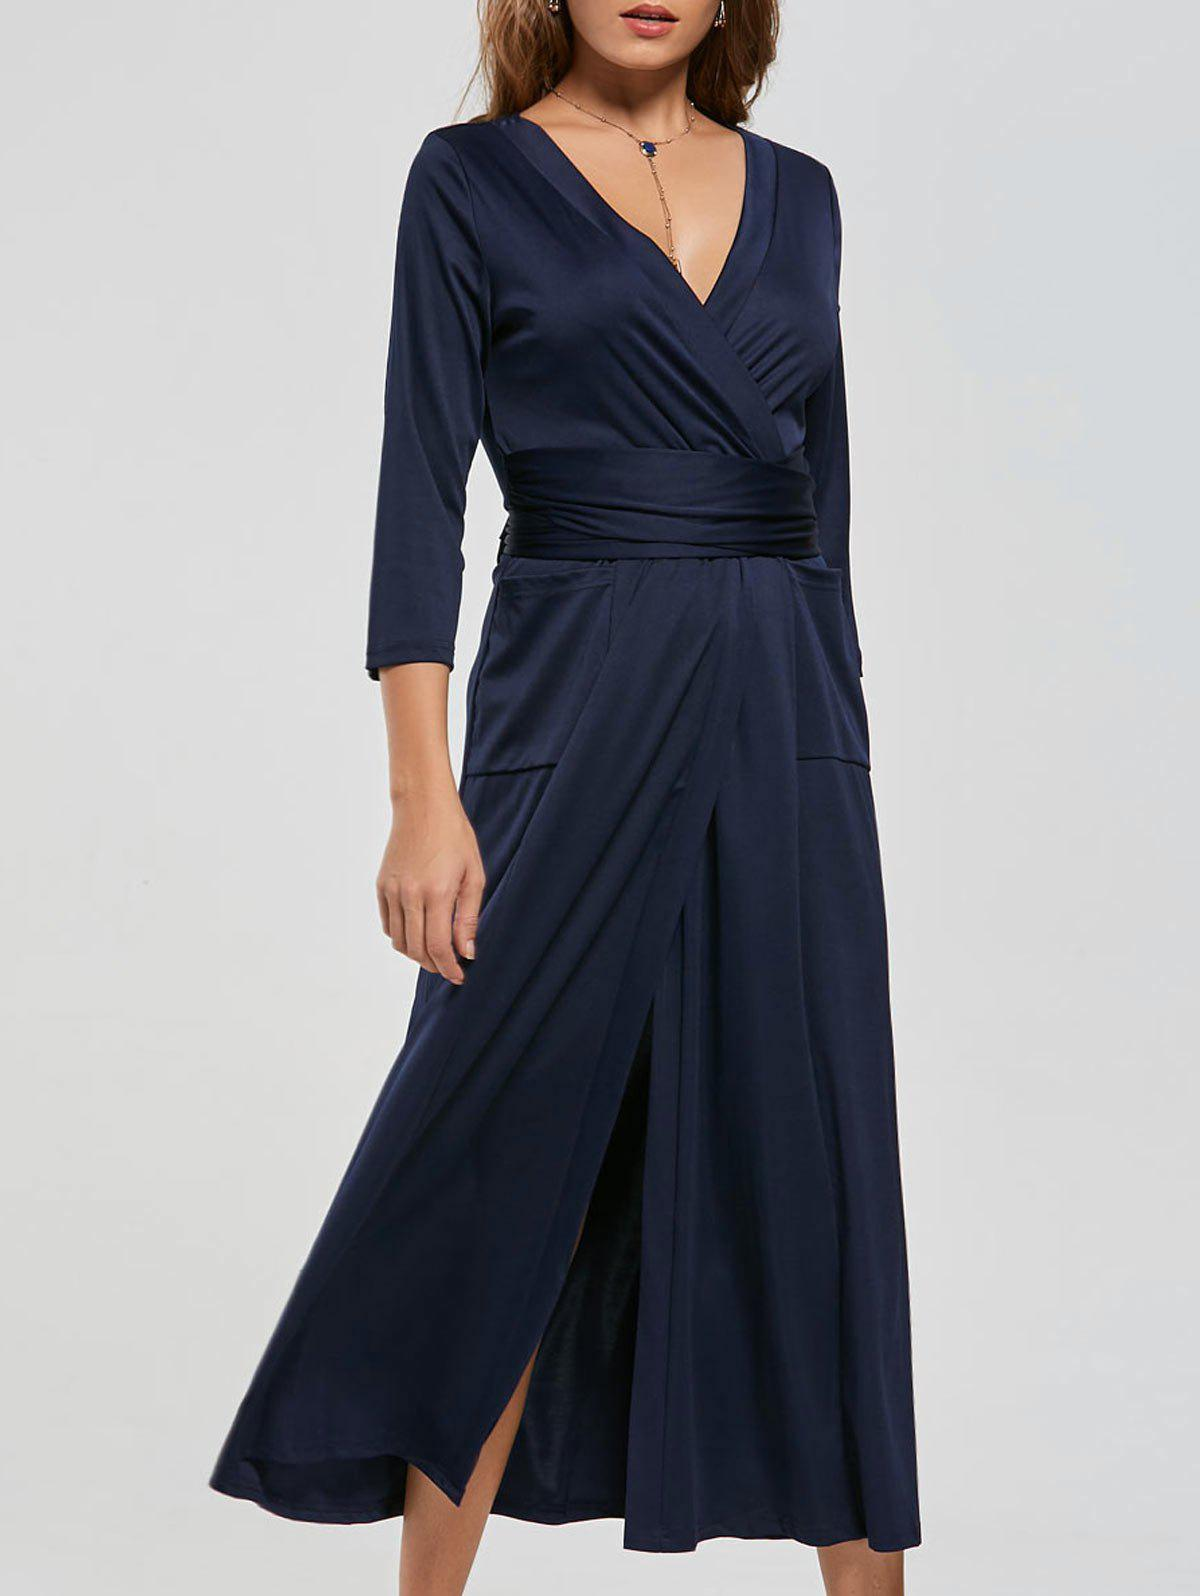 V Neck Pockets Robe de survêtement Midi - Bleu Violet XL